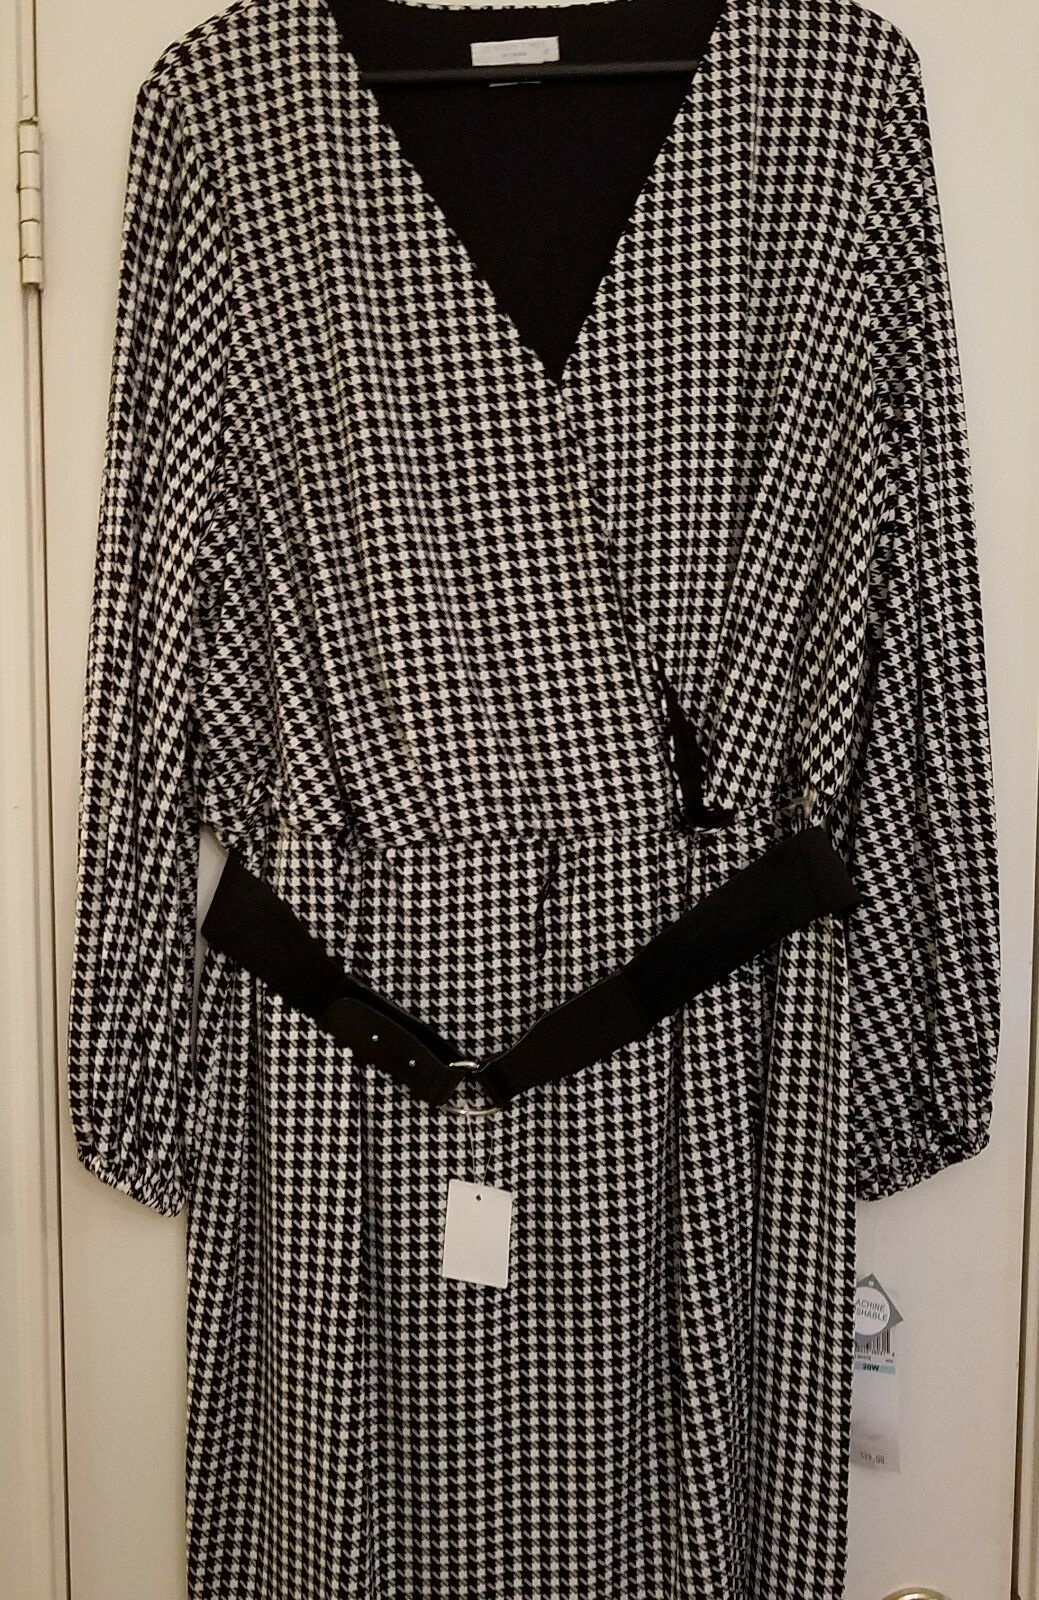 NWT London Times Woman Houndstooth Dress size 20